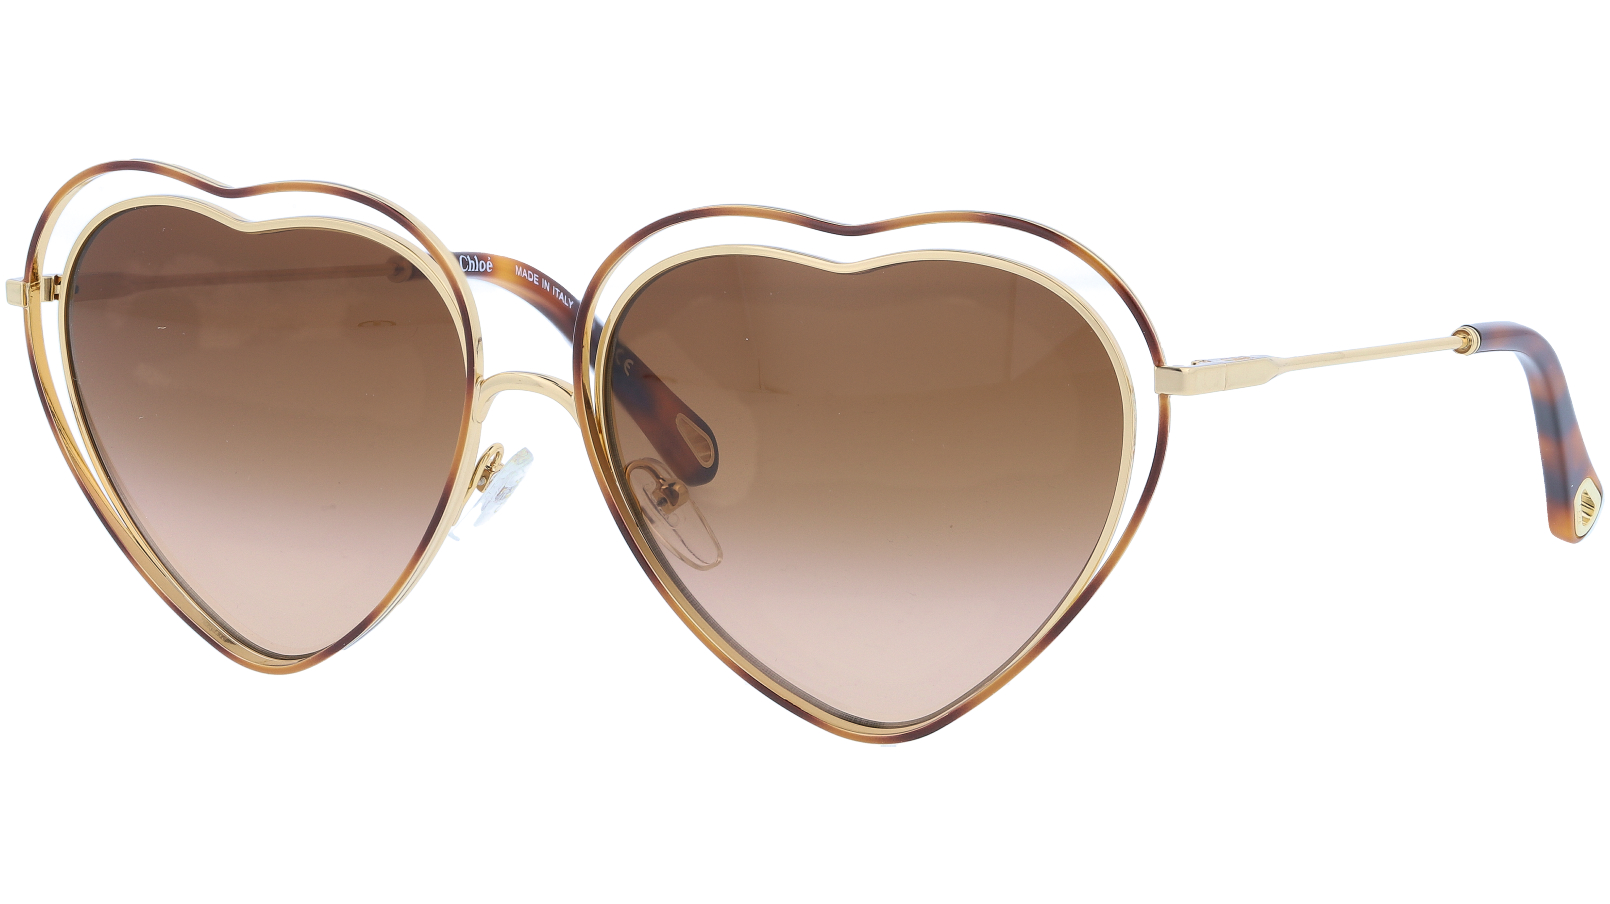 CHLOE CE131S 213 61 Havana Brown Poppy Heart Sunglasses